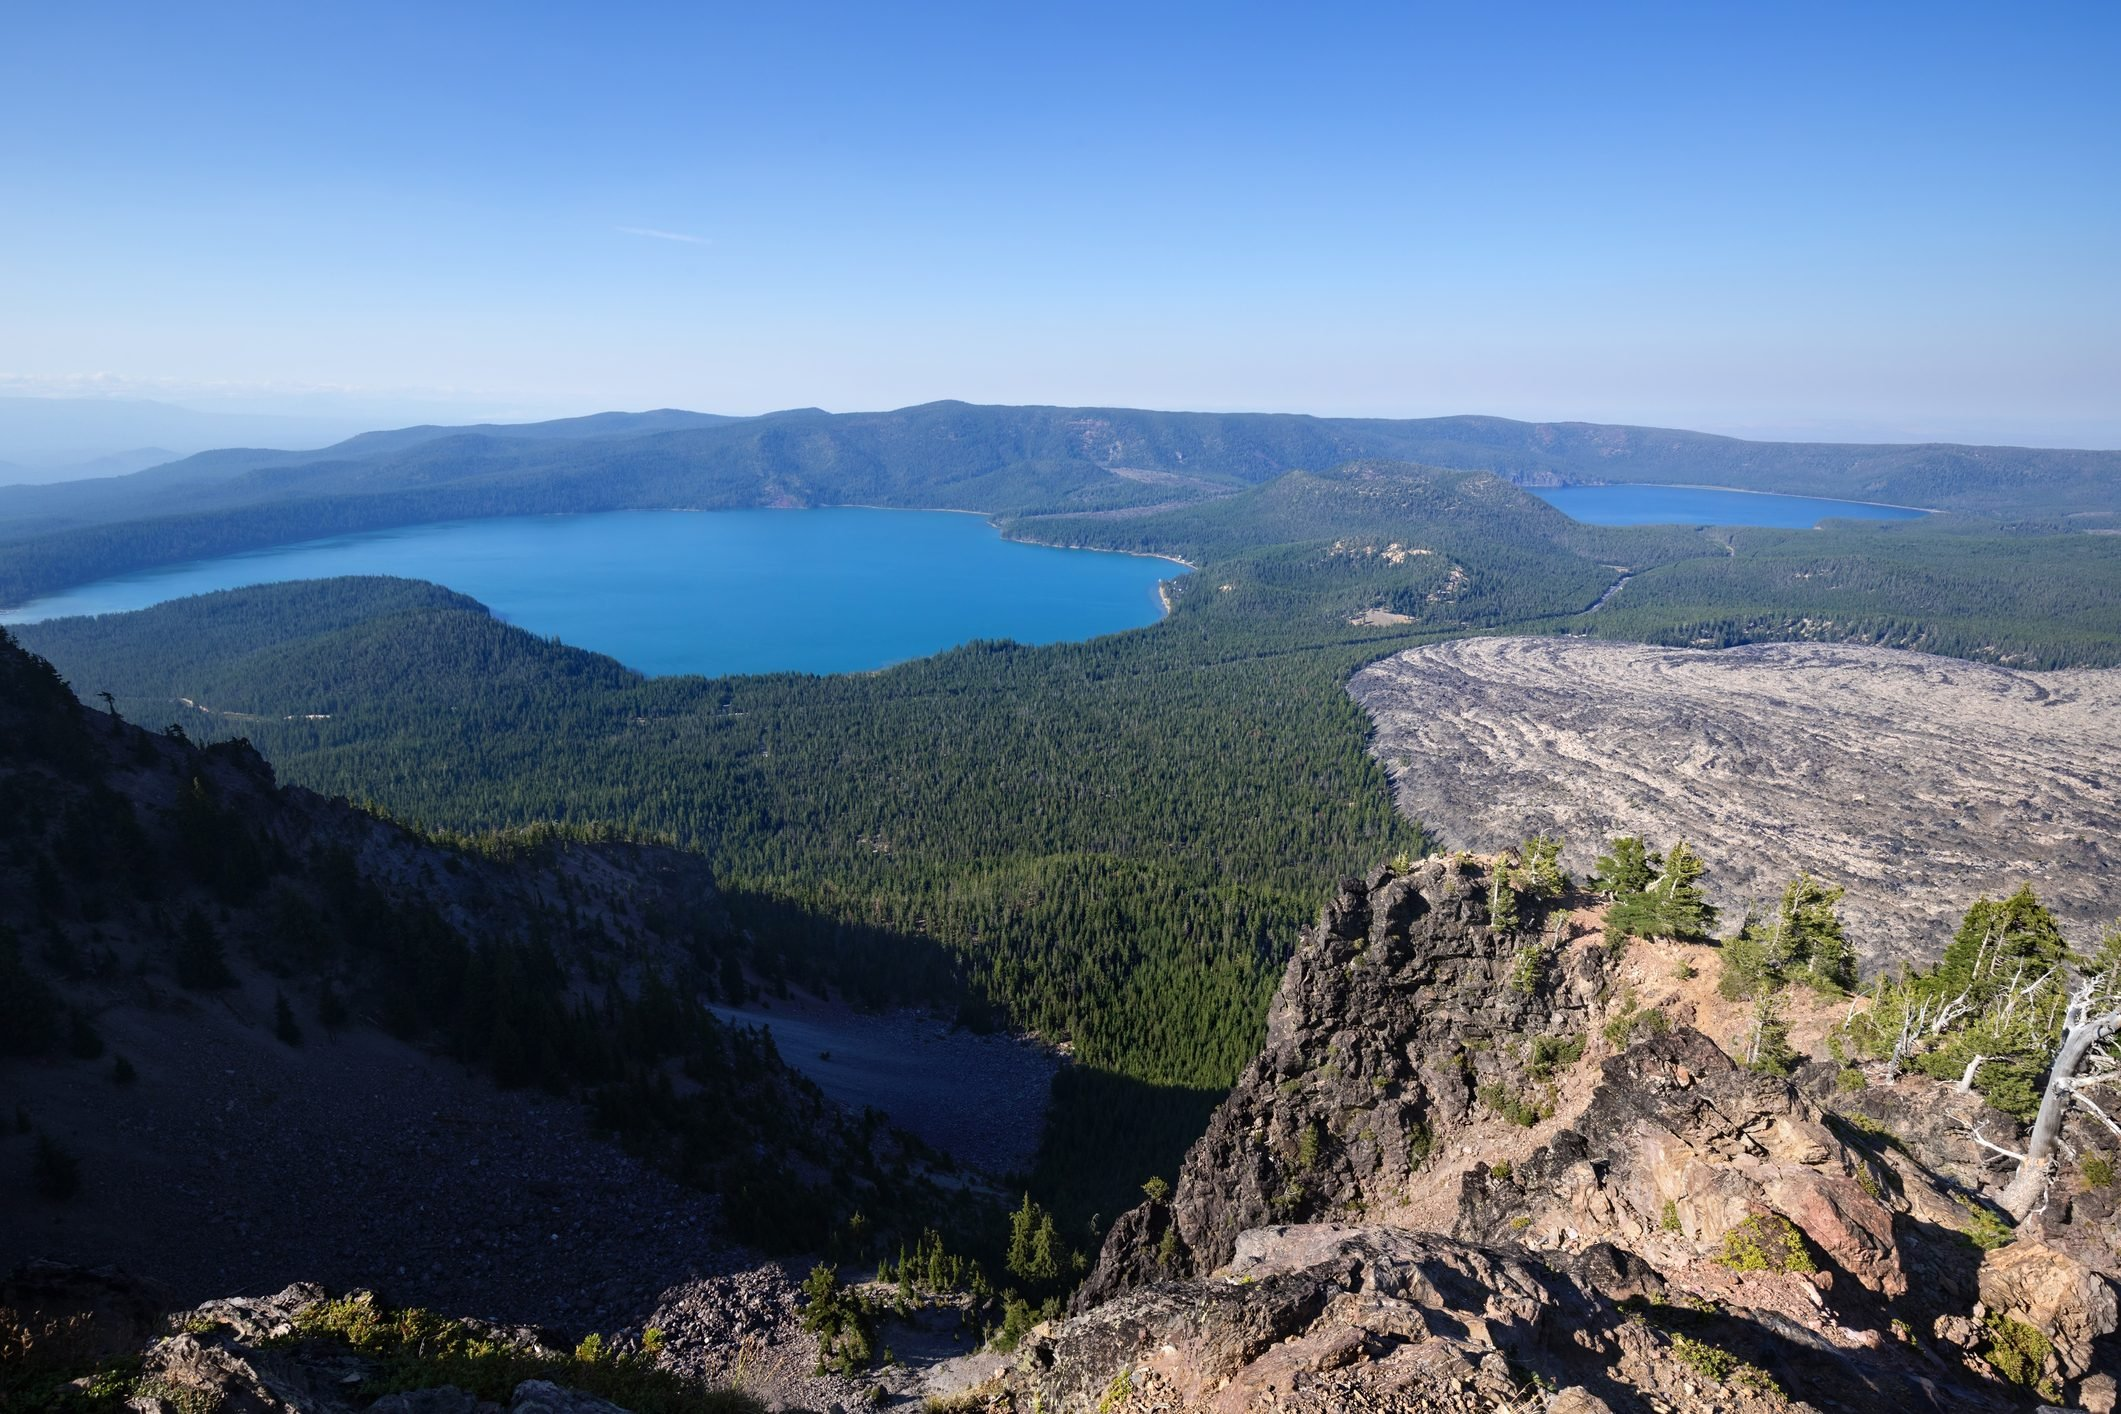 Panoramic view from Paulina Peak, Newberry National Volcanic Monument near Bend, Oregon